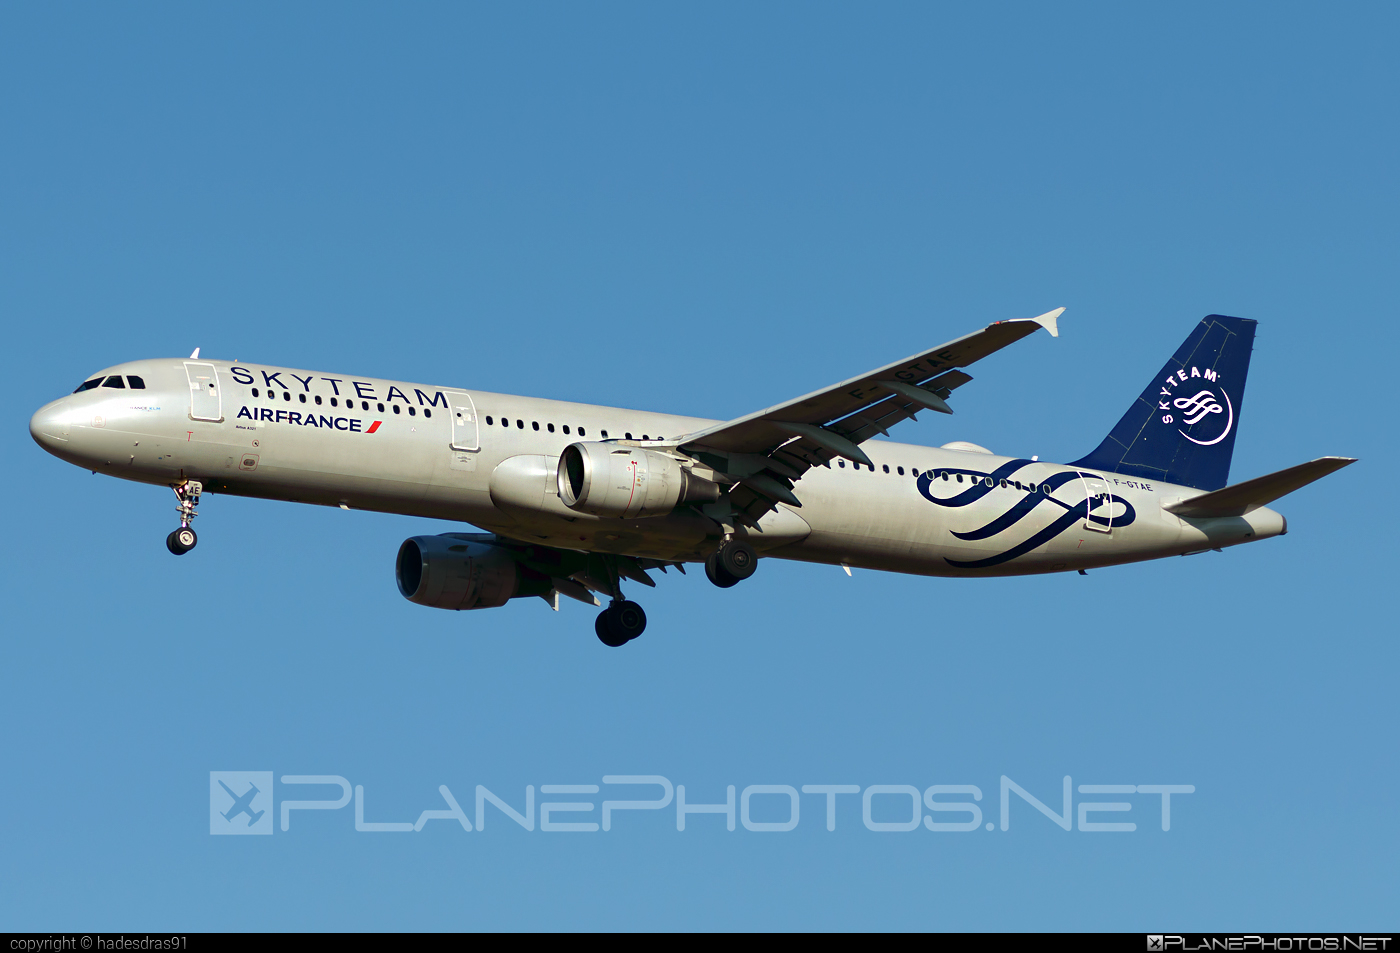 Airbus A321-212 - F-GTAE operated by Air France #a320family #a321 #airbus #airbus321 #airfrance #skyteam